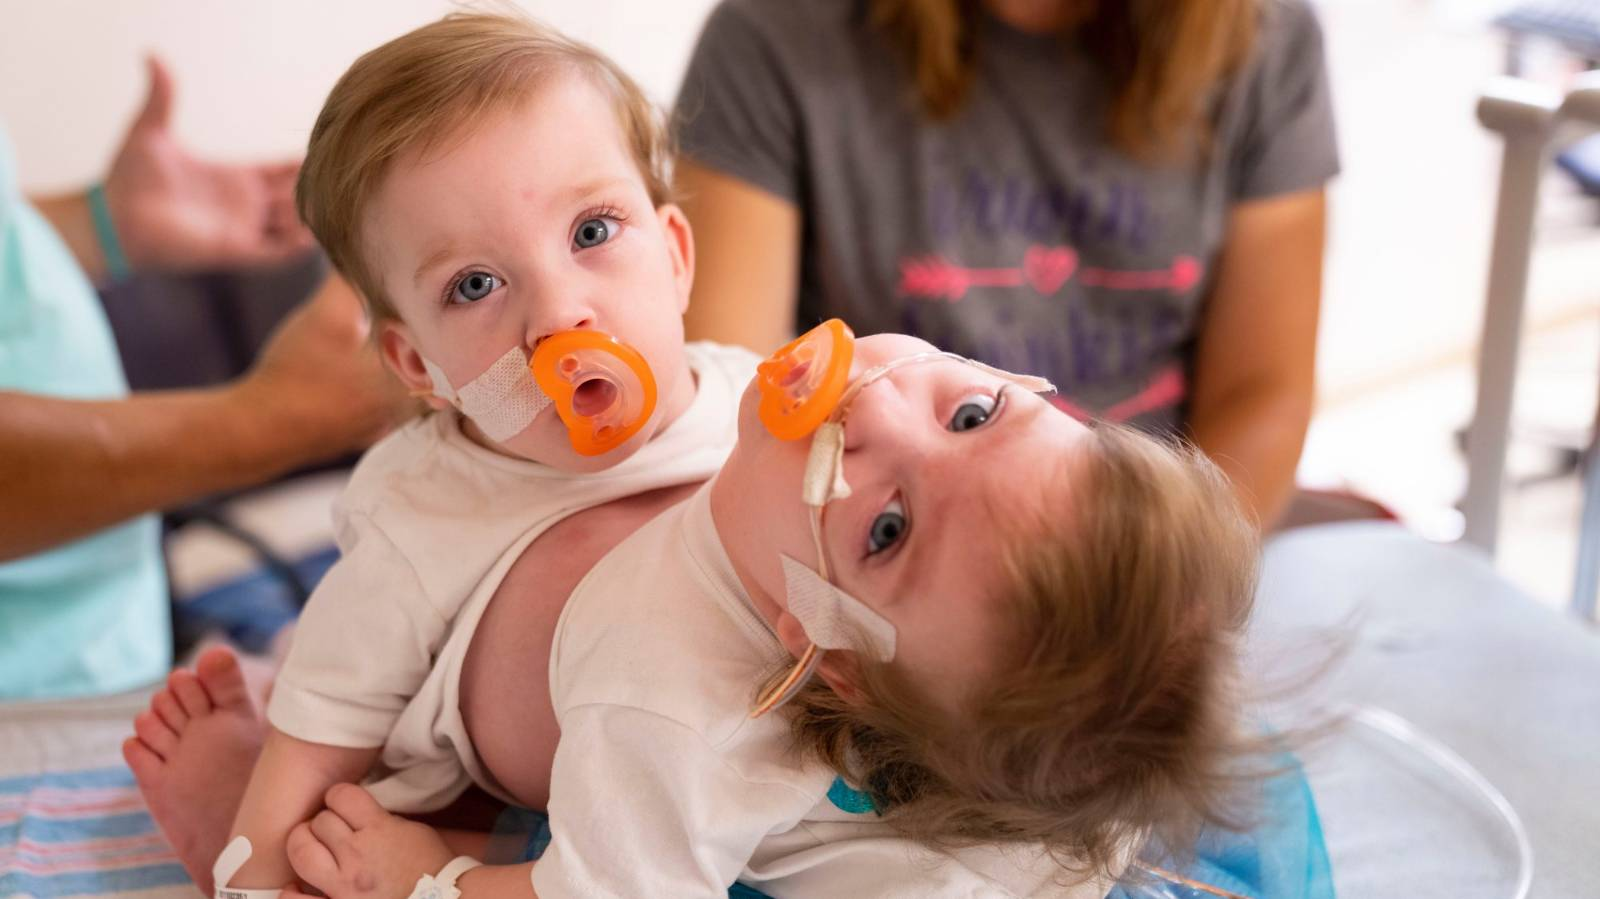 Conjoined twins separated in 'extraordinary, emotional' surgery